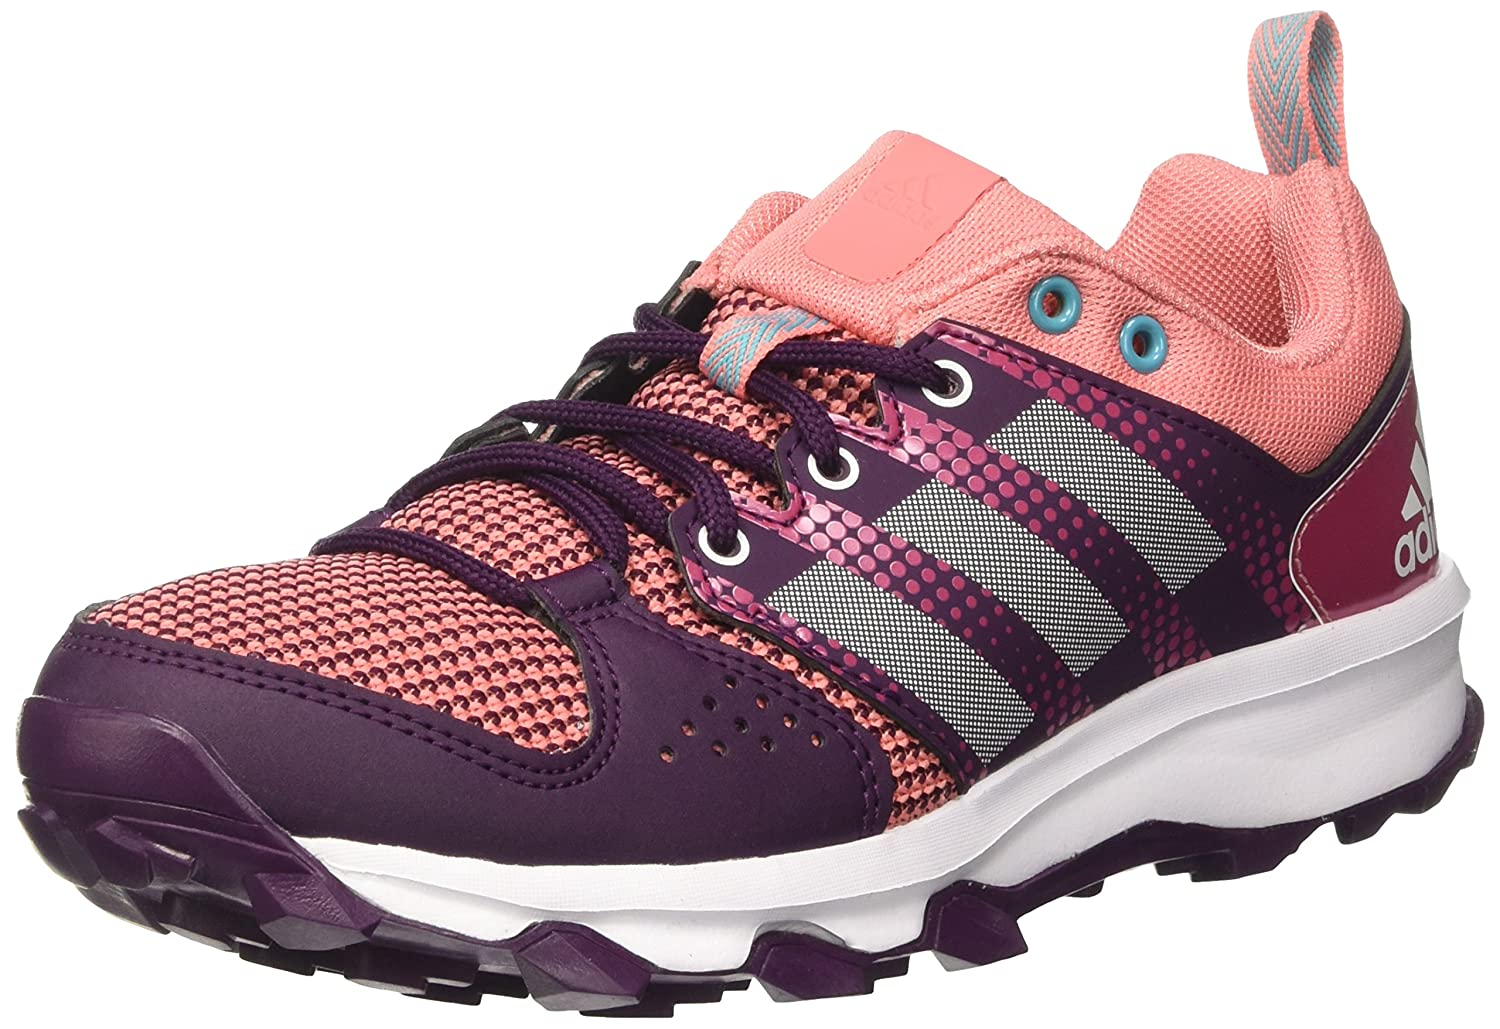 quality design c968e 83bdc adidas Galaxy Trail W, Chaussures de Running Femme, Core Black Icey Blue